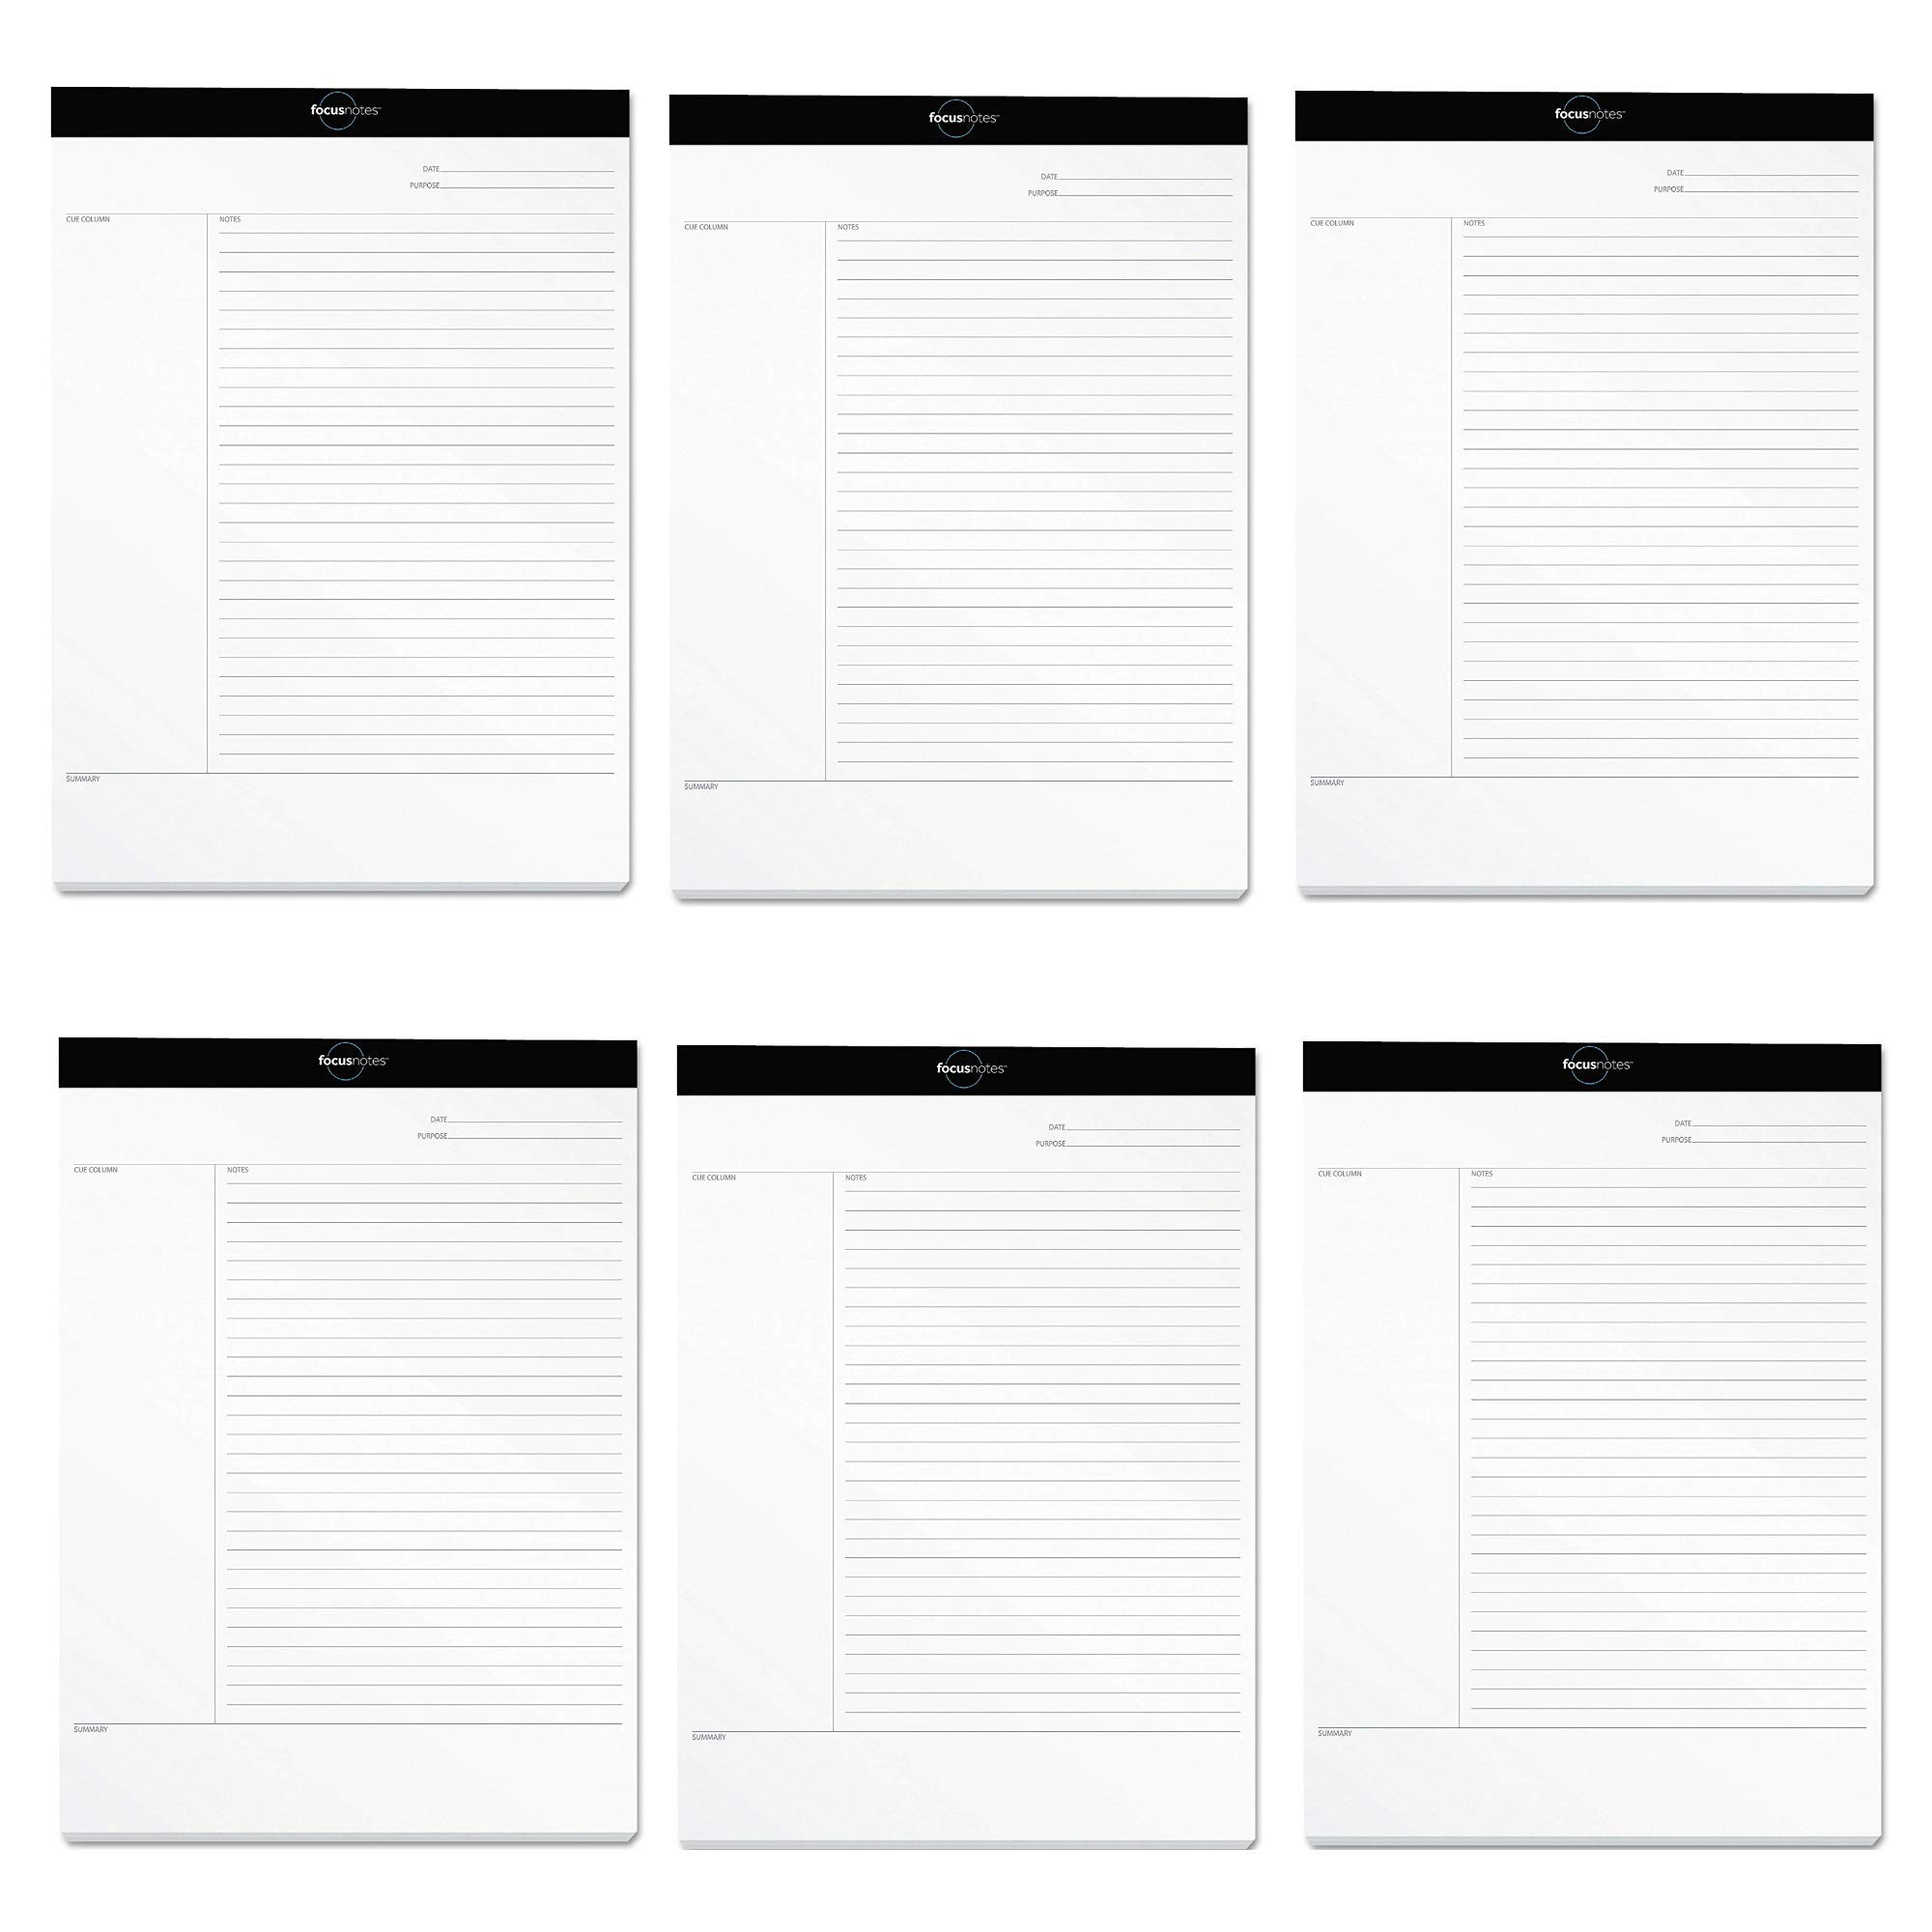 TOPS FocusNotes Note Taking System Legal Pad, 8-1/2 x 11-3/4 Inches, White, 50 Sheets (77103) - 6 PACK by TOPS